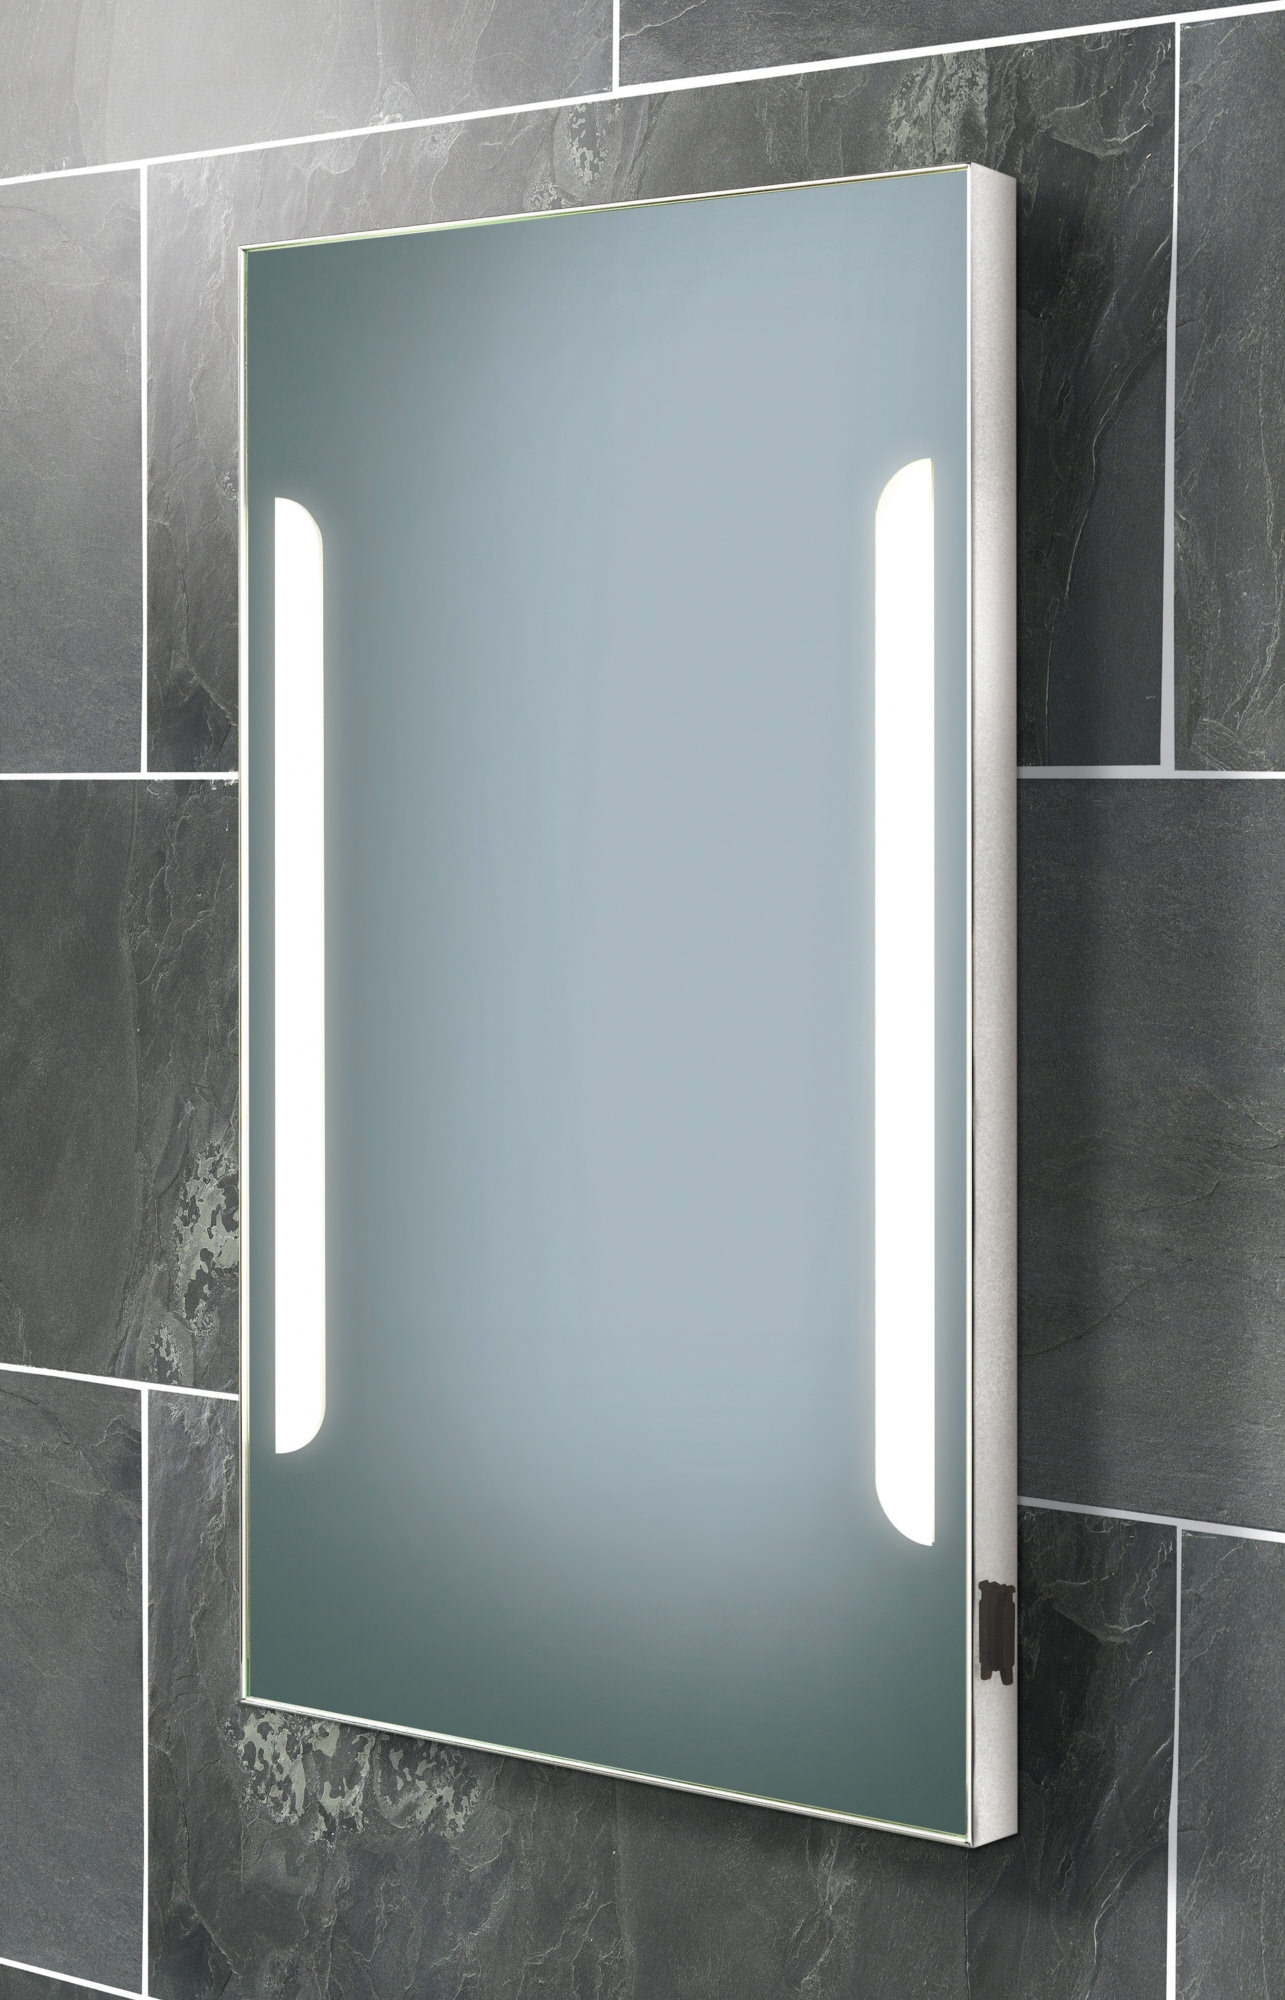 Bathroom Mirror Light With Motion Sensor Shaver Socket